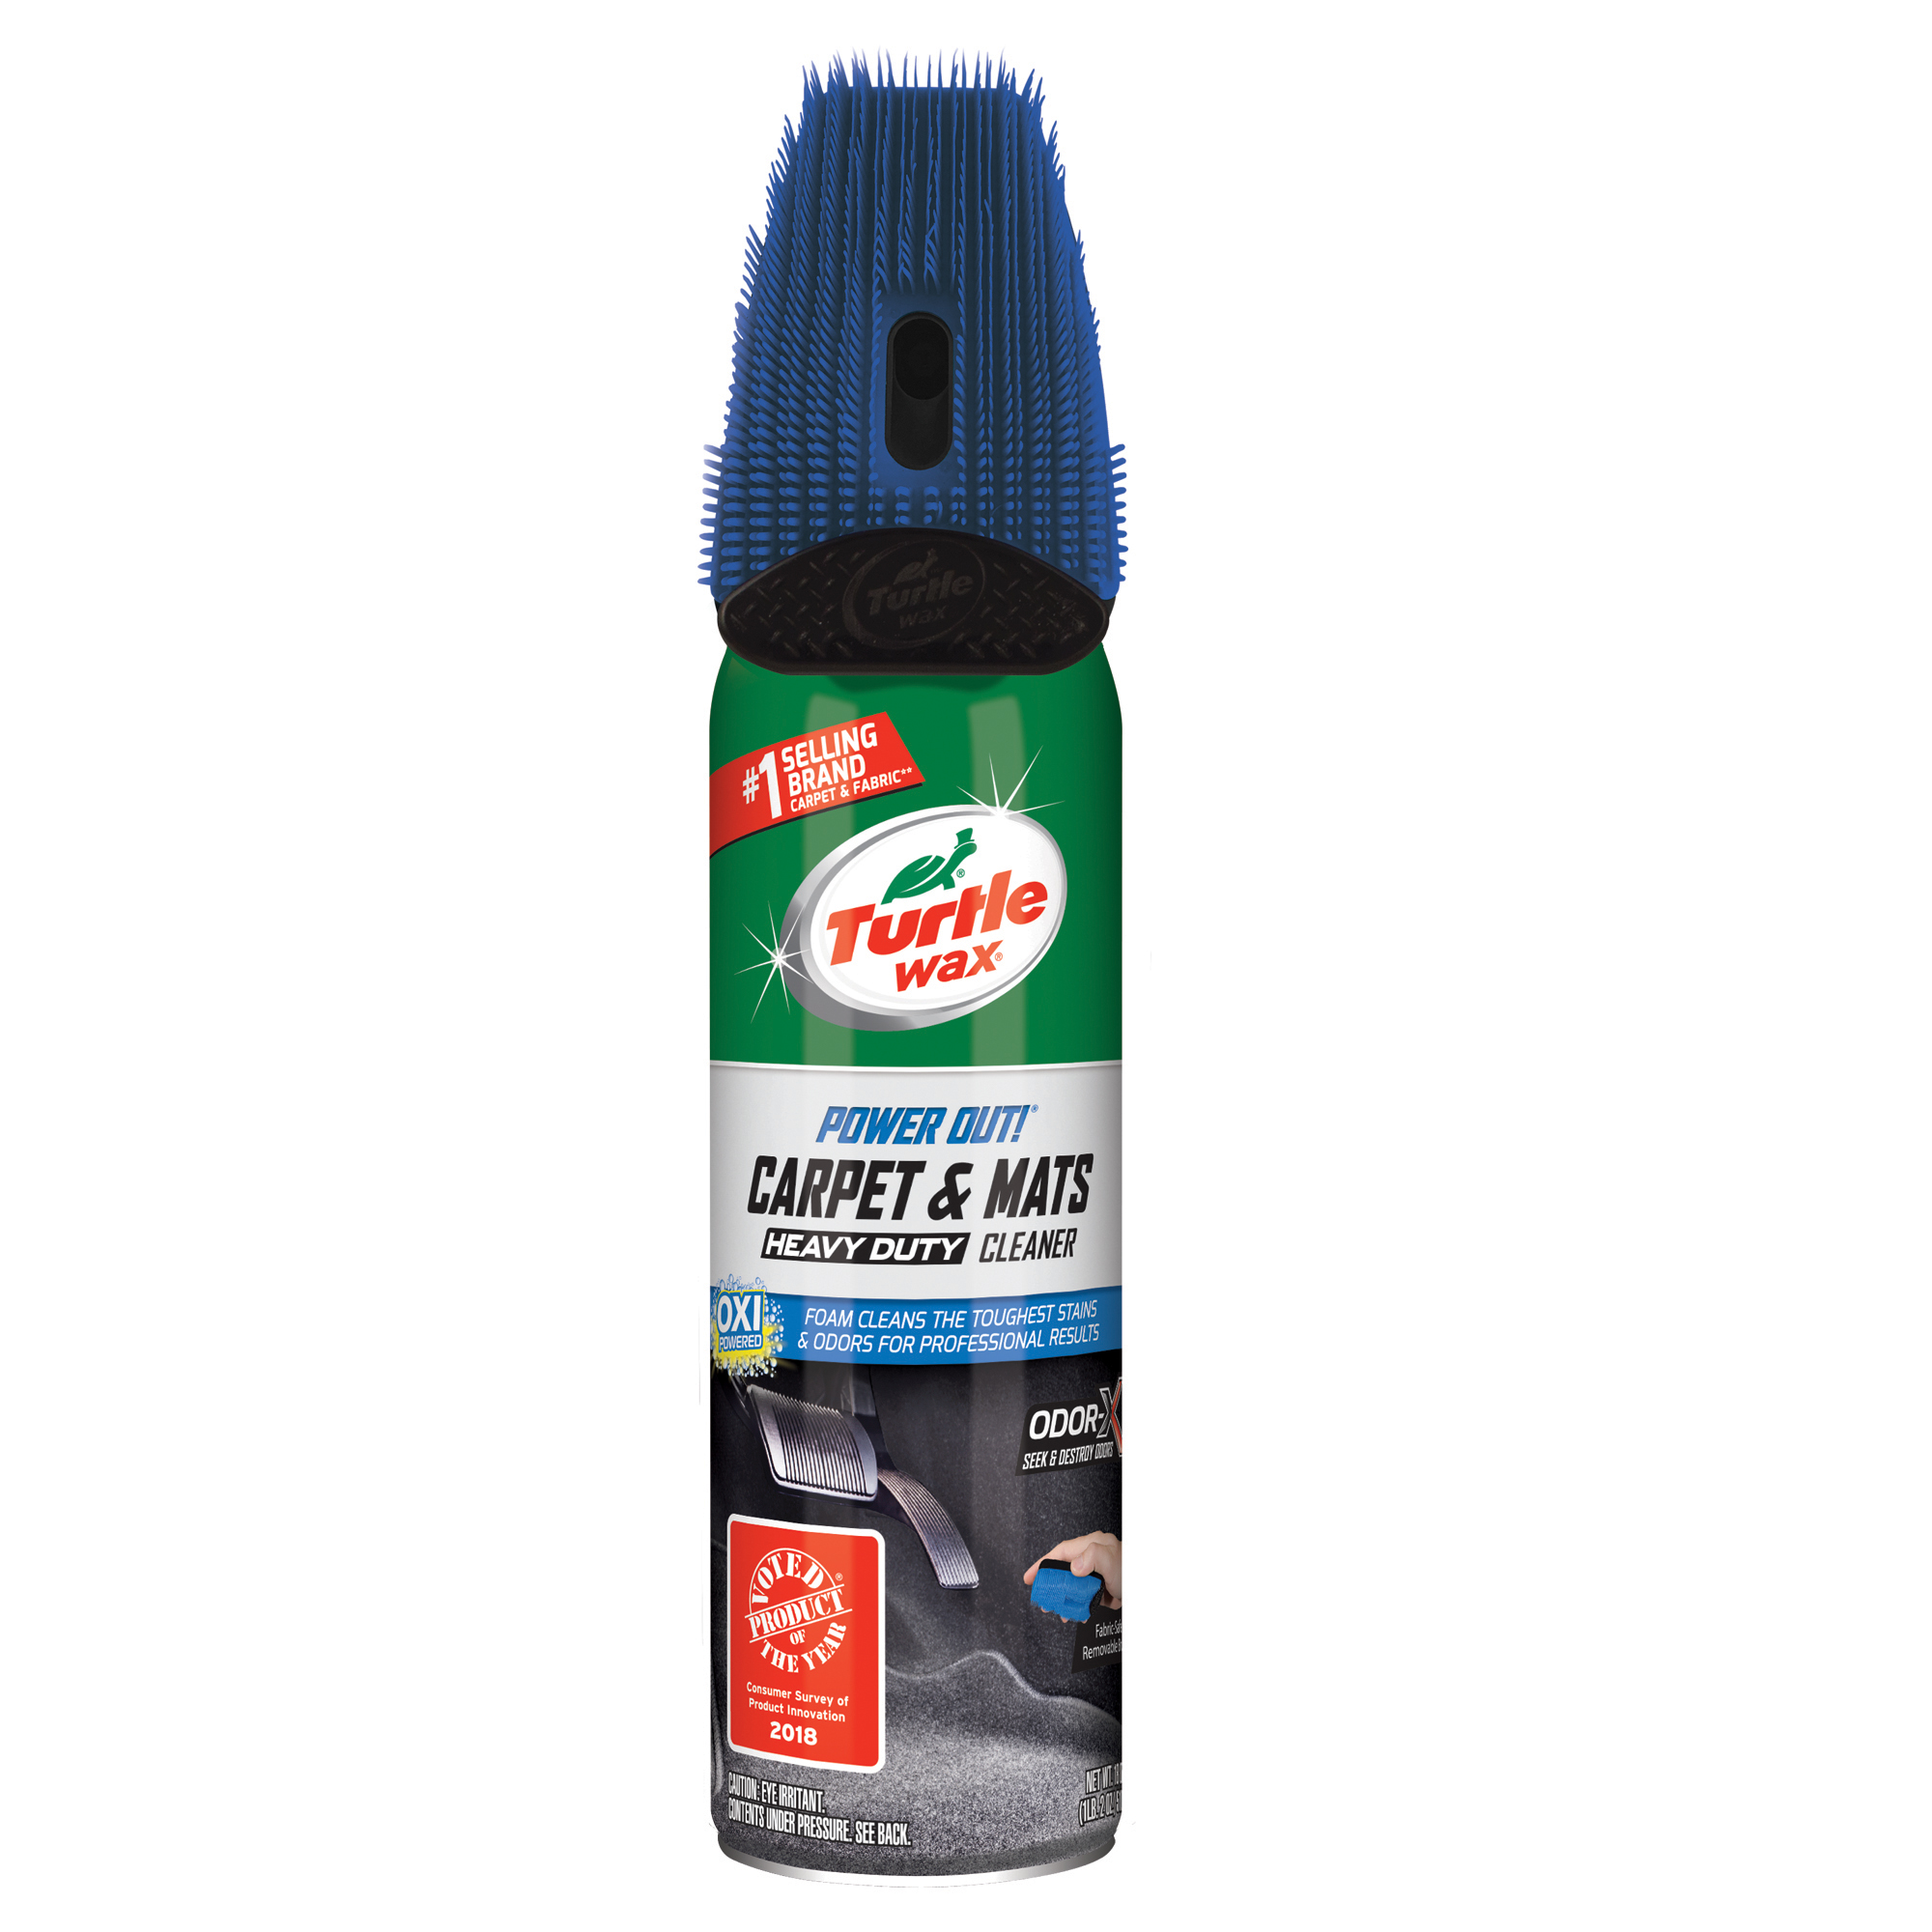 Turtle Wax 50797 Power Out Carpet and Mats Heavy Duty Cleaner, 18oz